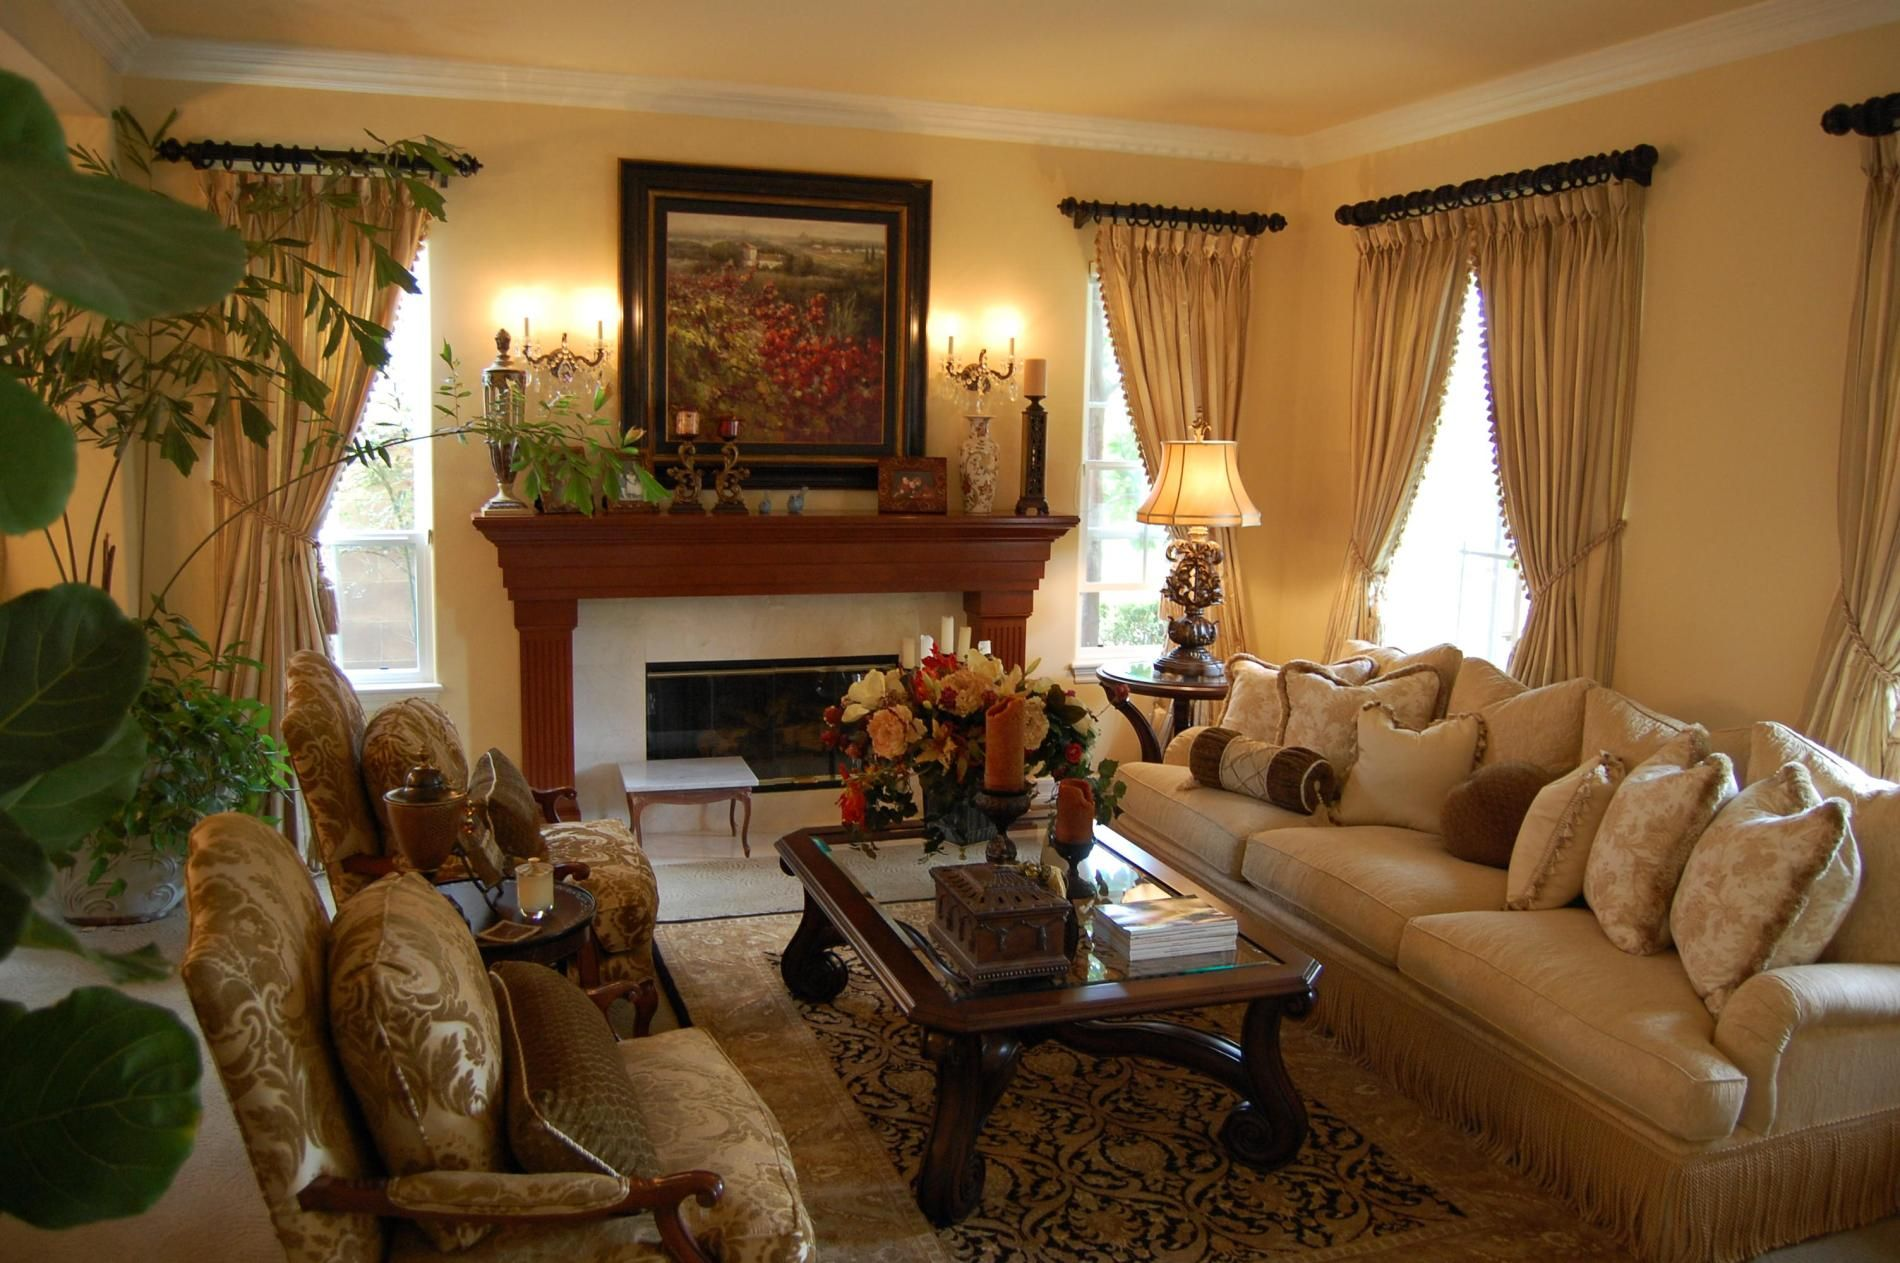 Living Room Family Room Decorating Ideas Traditional living room fireplace ideas and decorating rooms hearth decor traditional